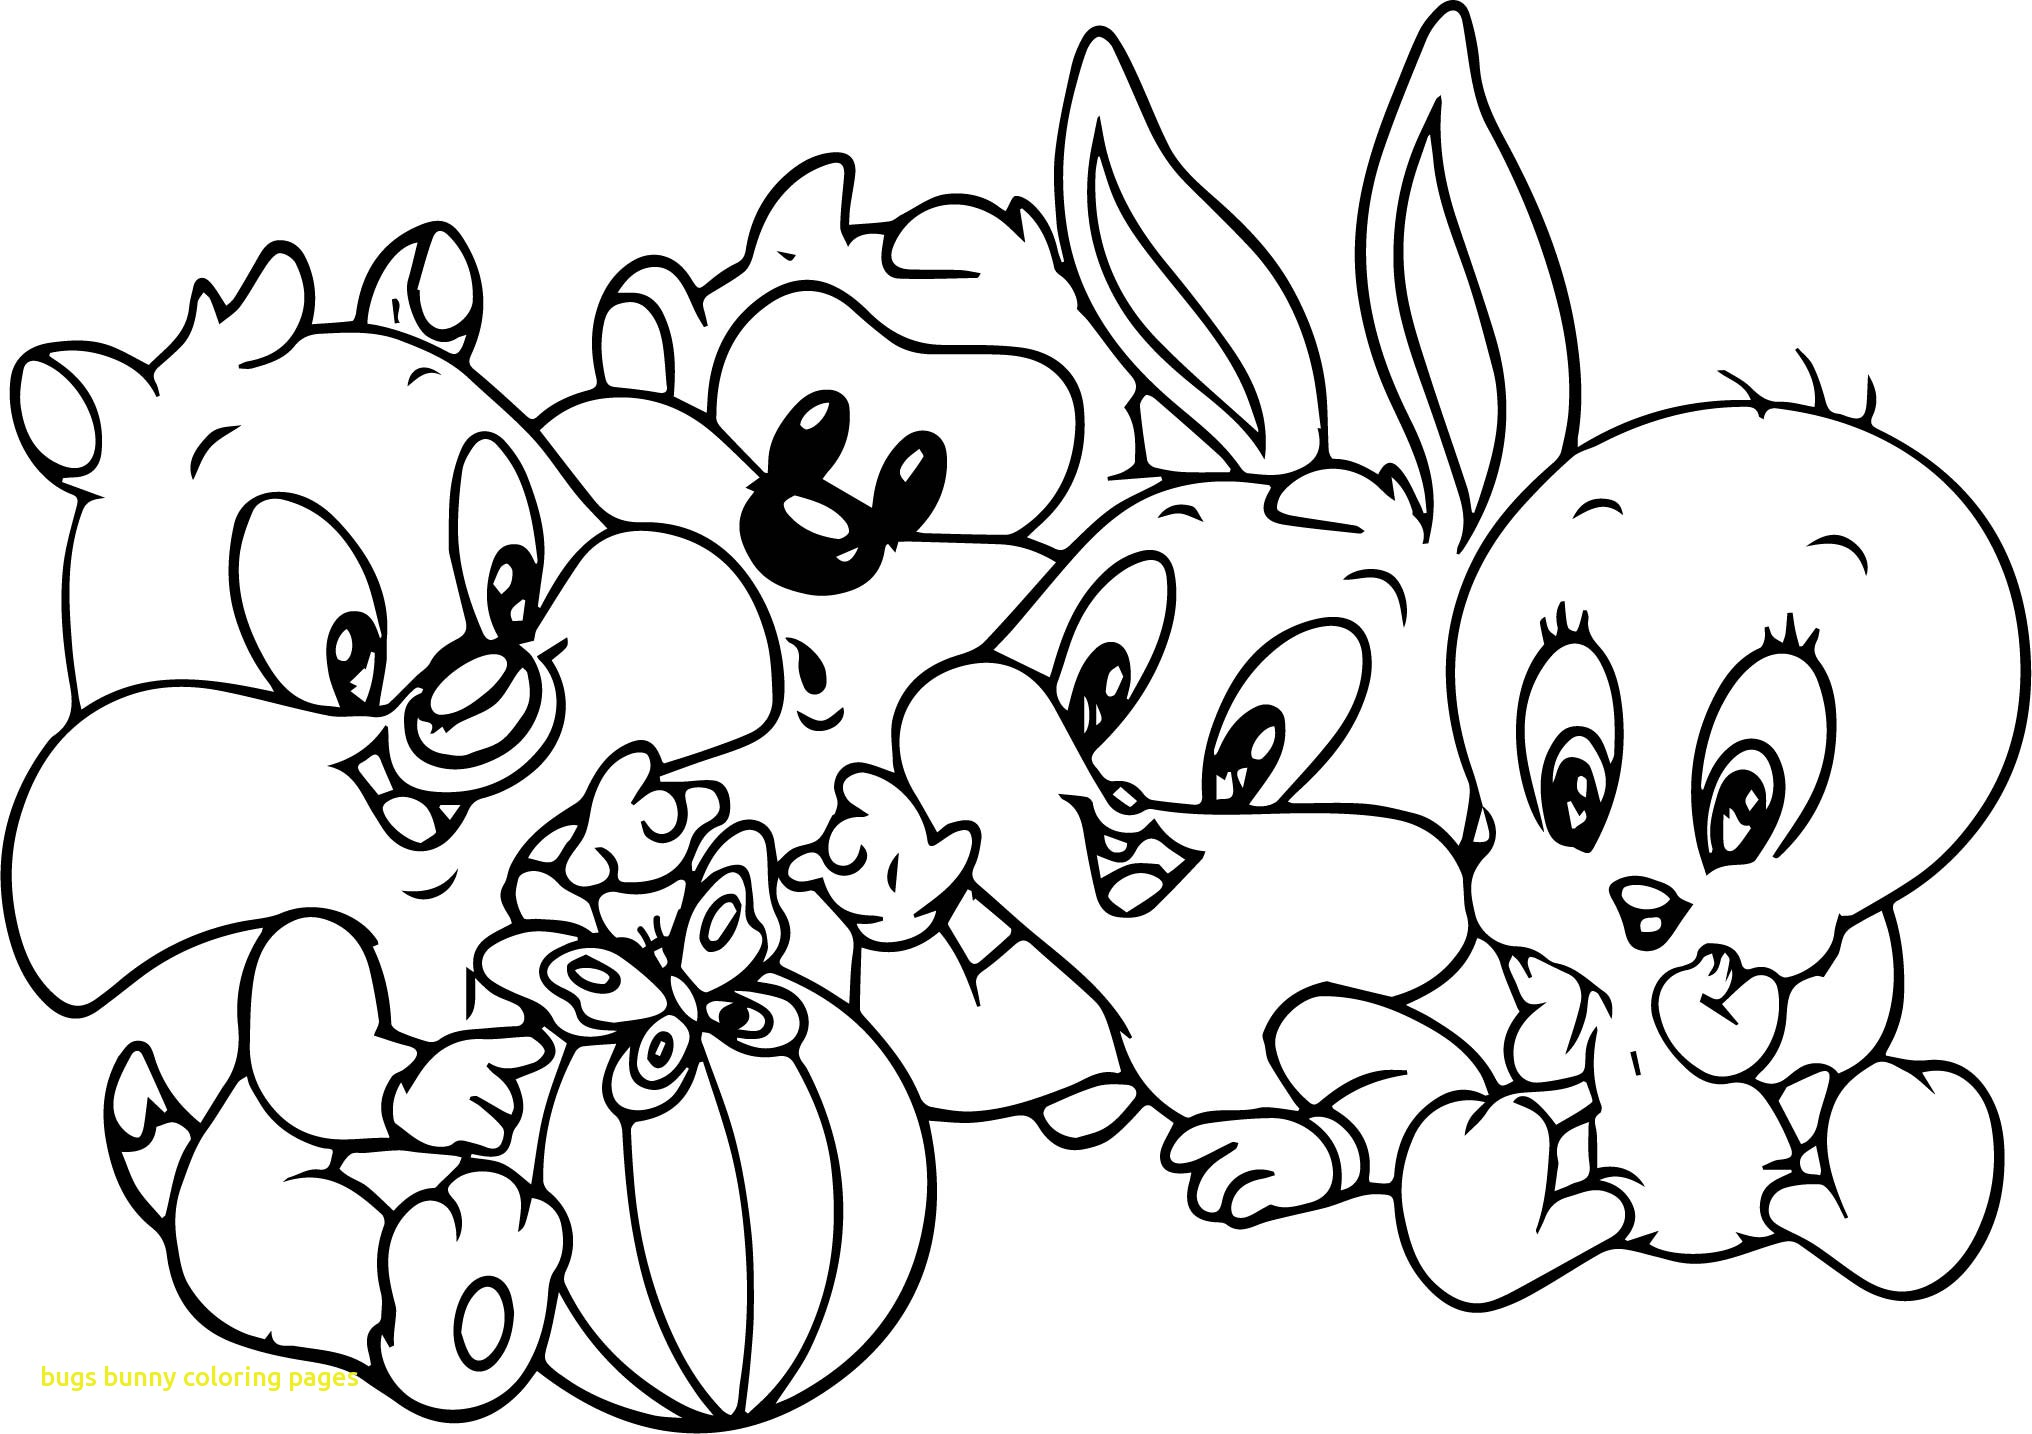 Bugs Bunny Cartoon Drawing at GetDrawings.com | Free for personal ...